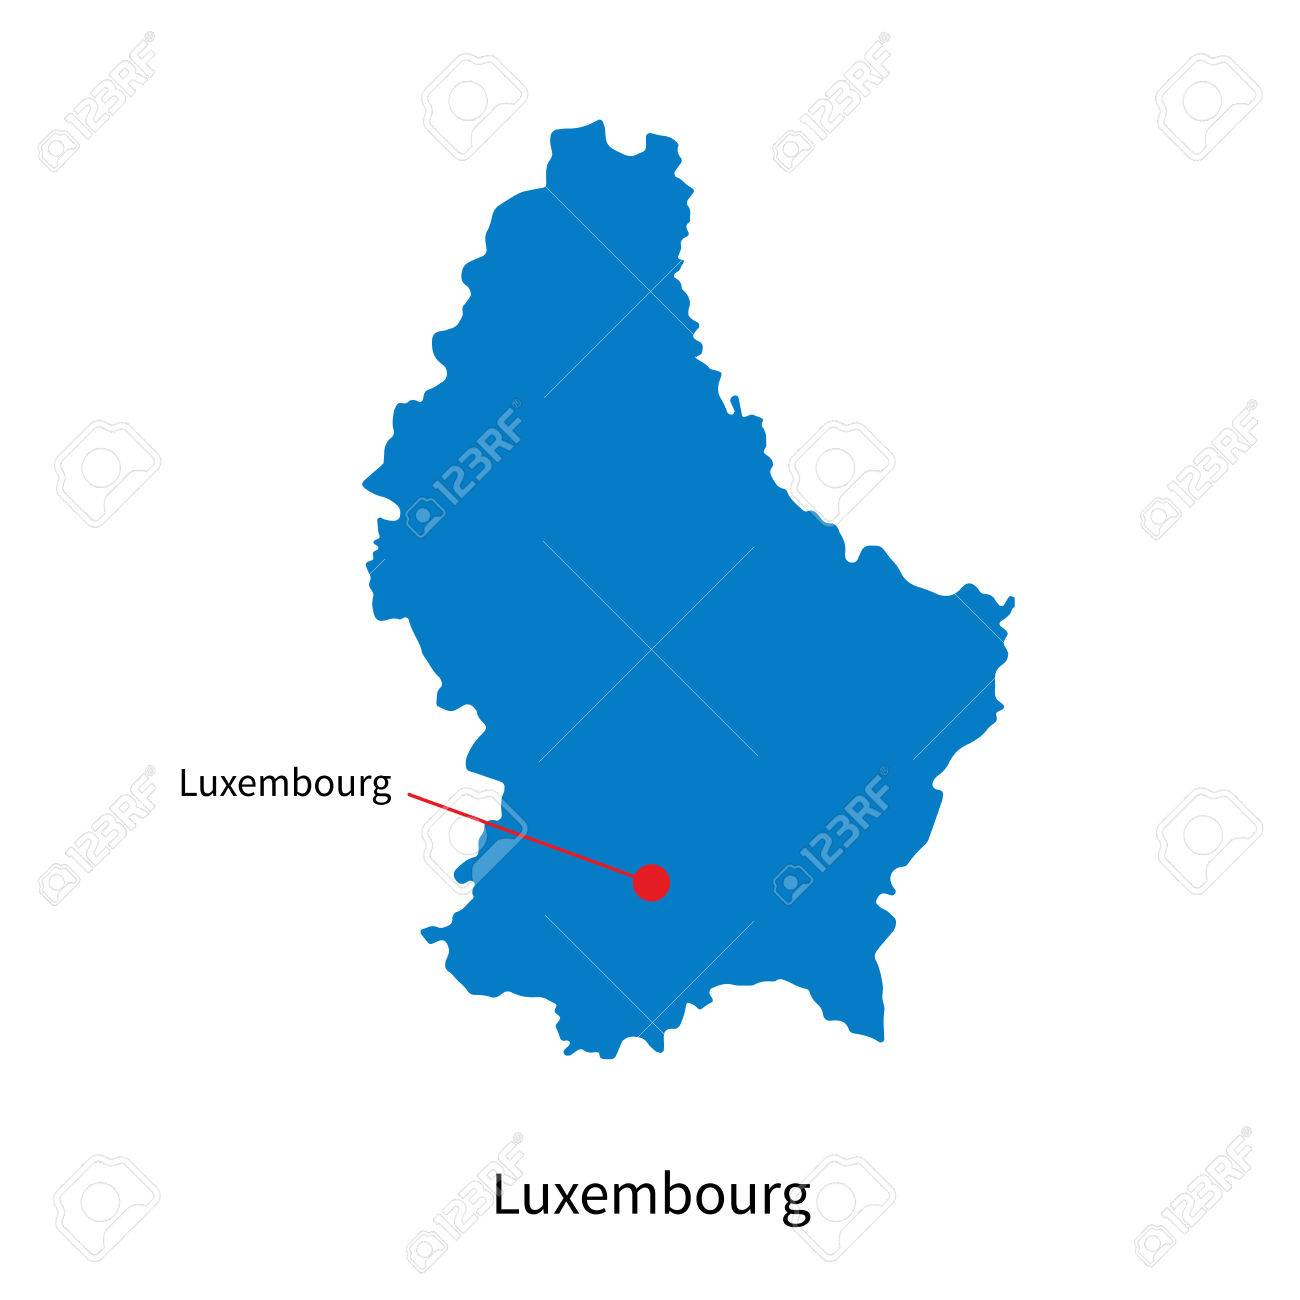 Detailed Map Of Luxembourg And Capital City Luxembourg Royalty - Luxembourg map